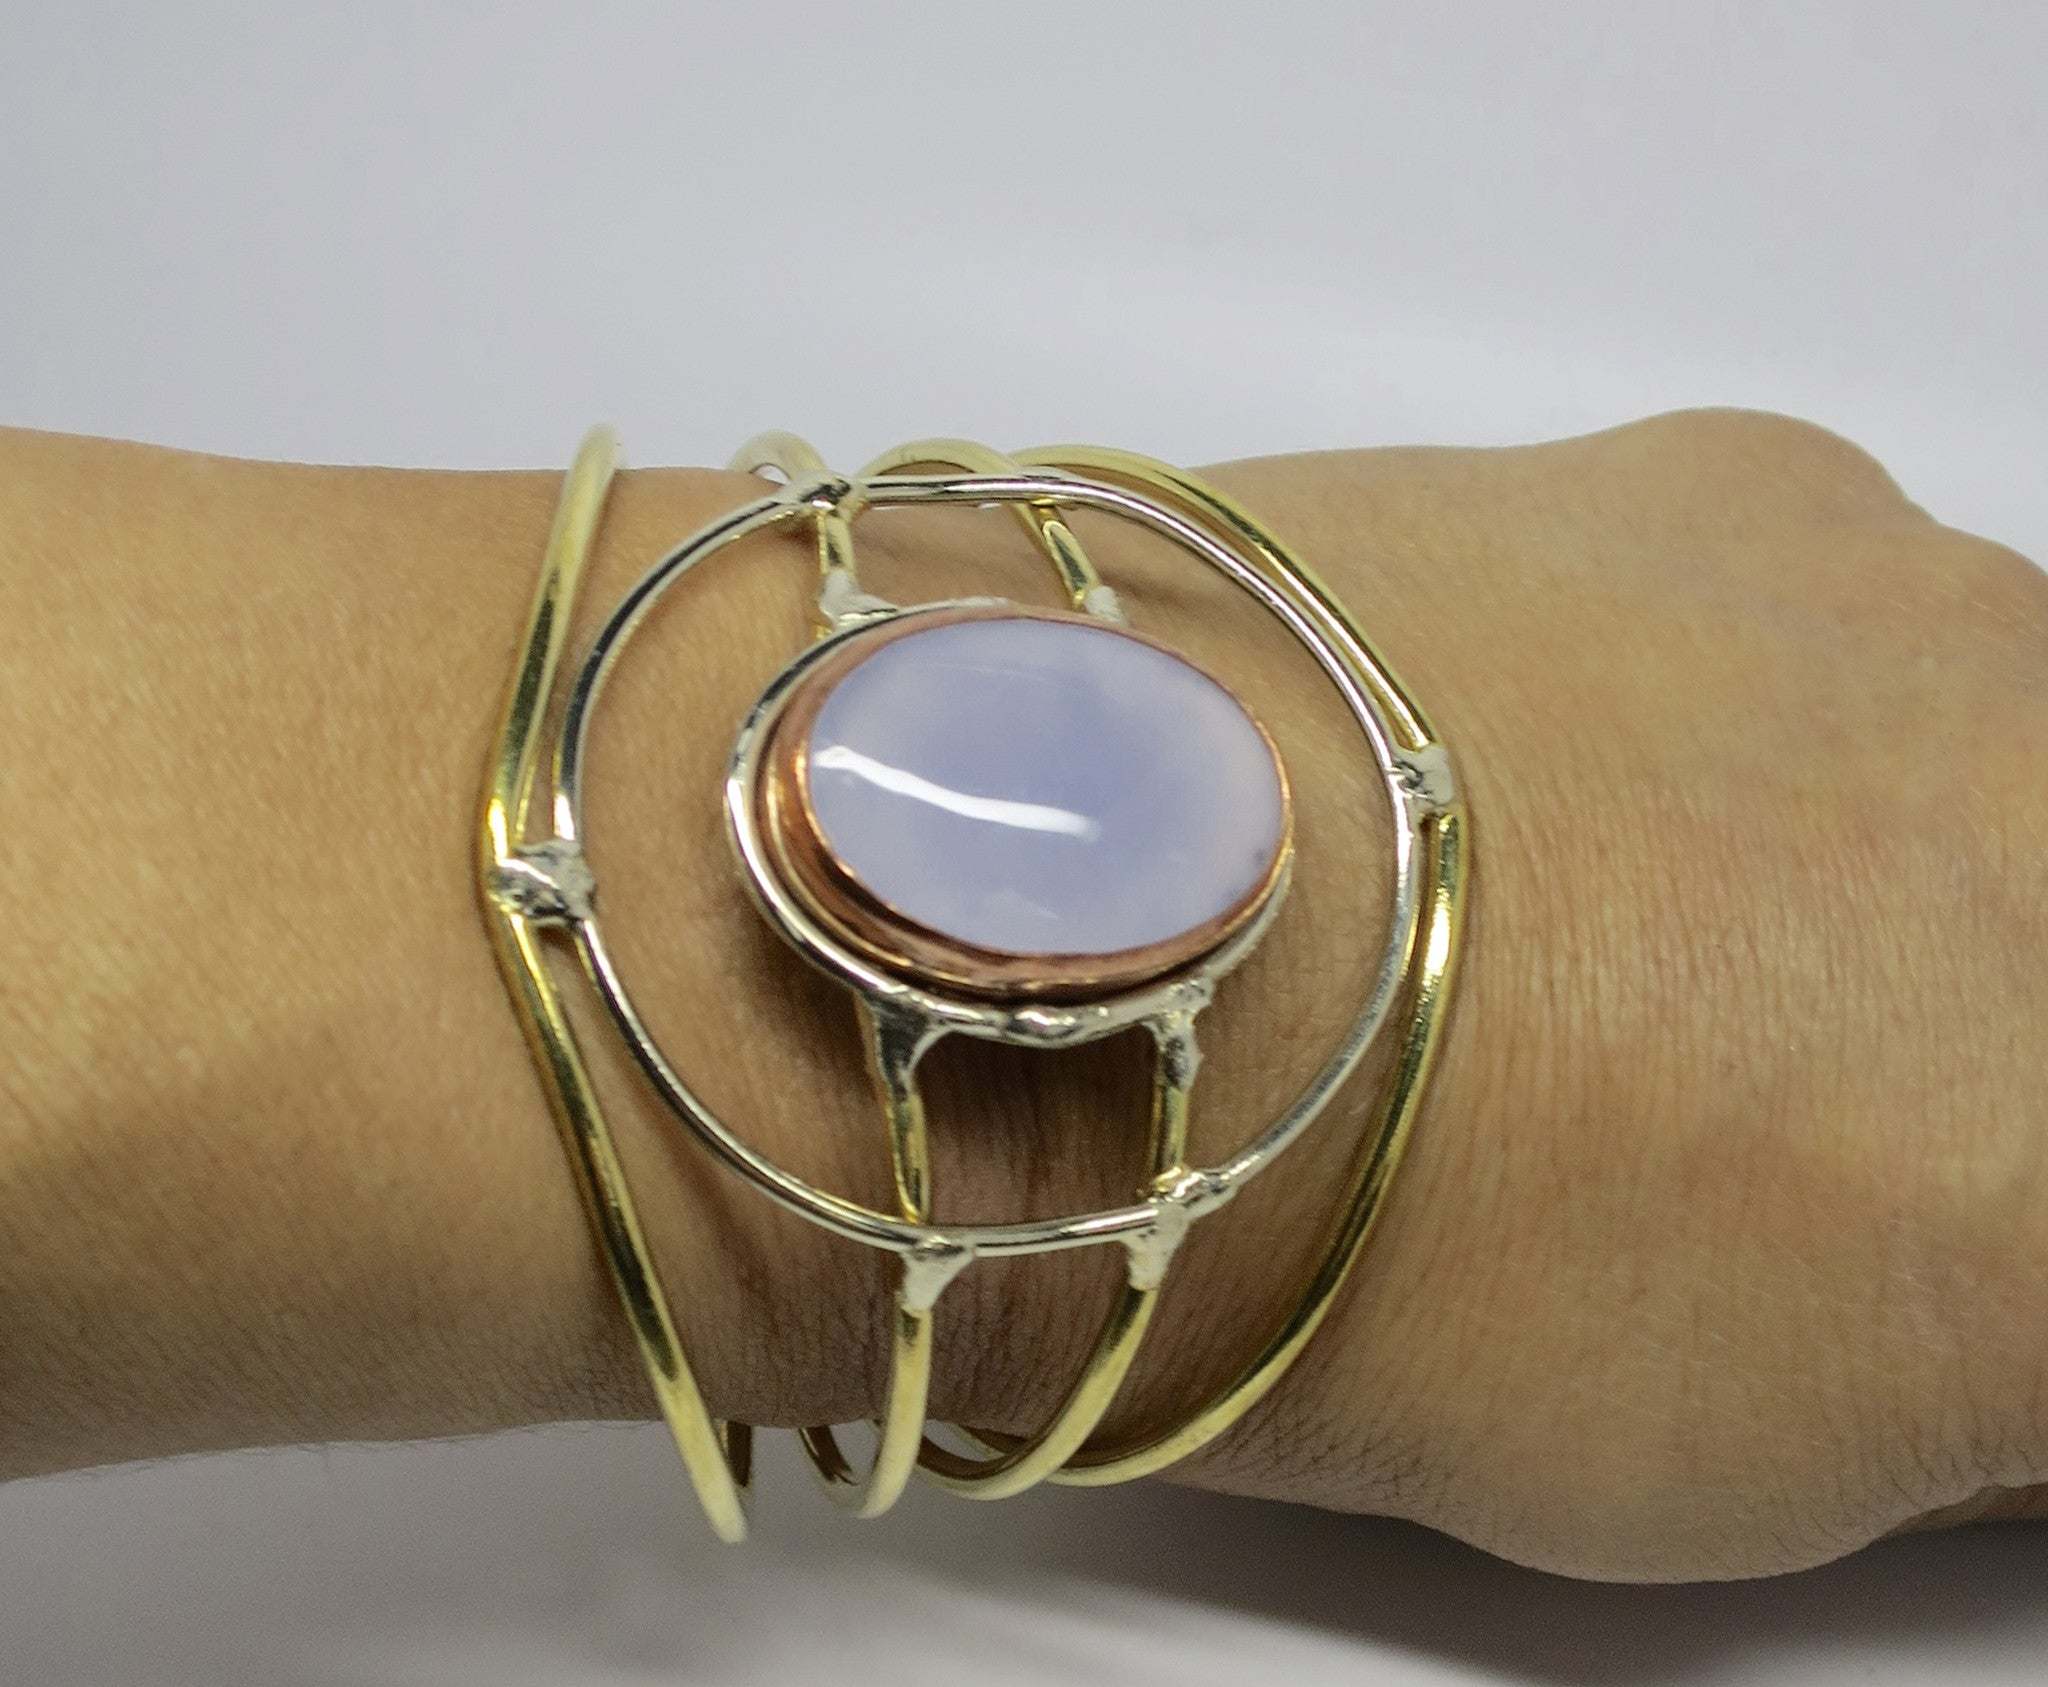 Allura Power Gems- Moonstone Bracelet- Golden Brass Wire Bracelet - Pretty Princess Style  - 2